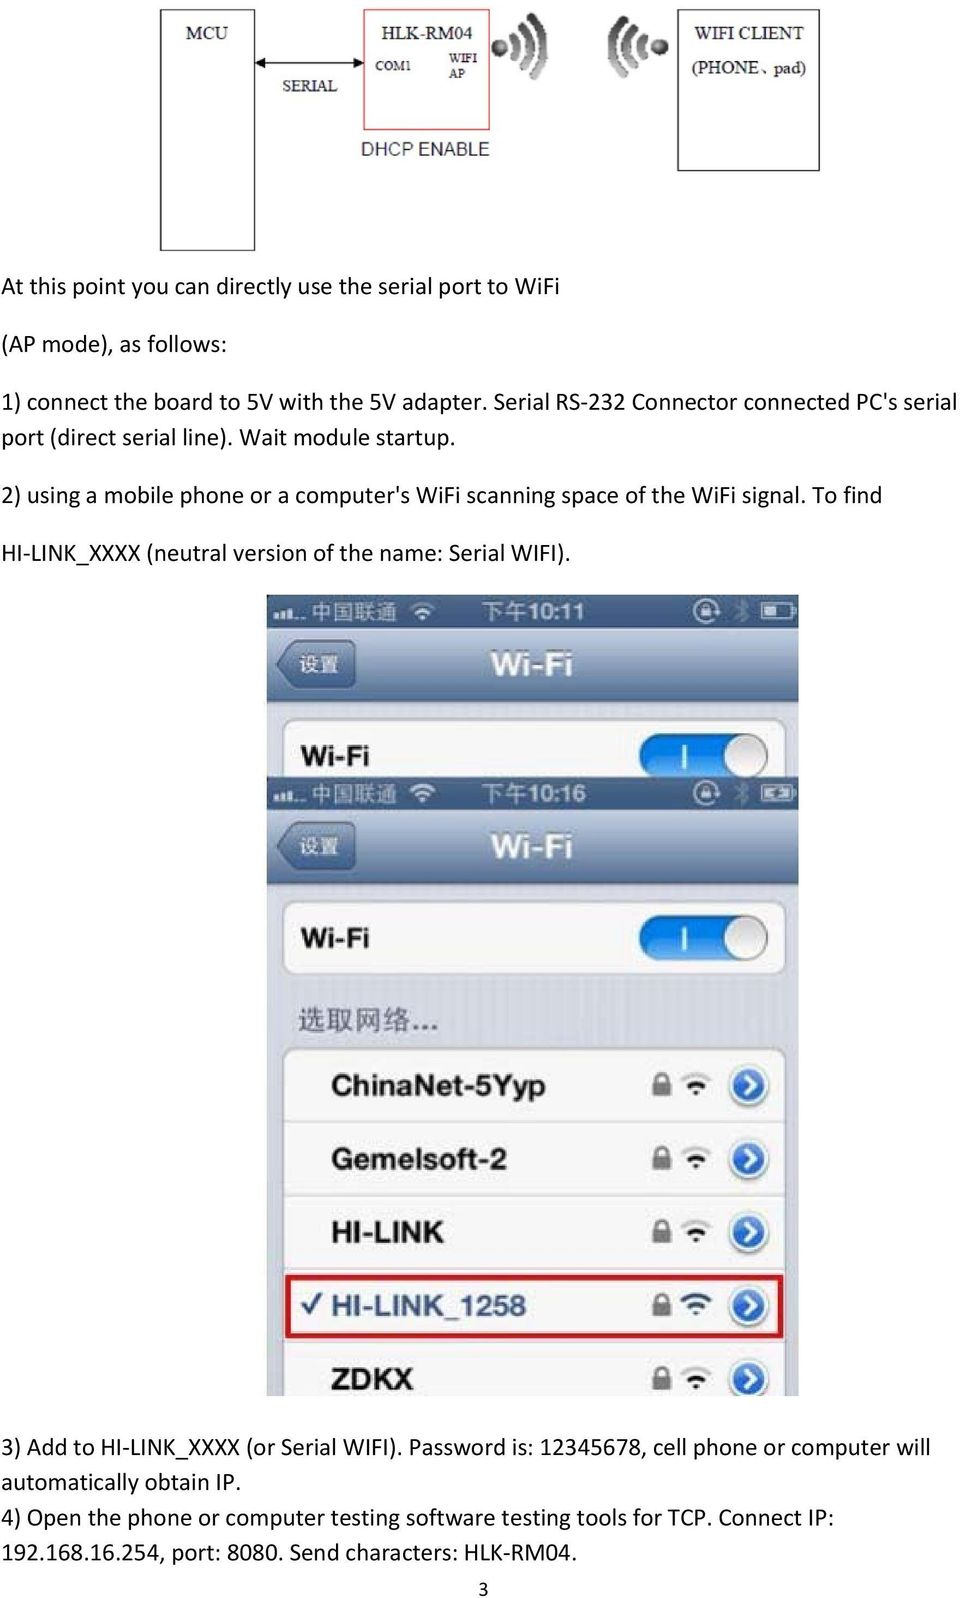 2) using a mobile phone or a computer's WiFi scanning space of the WiFi signal. To find HI LINK_XXXX (neutral version of the name: Serial WIFI).